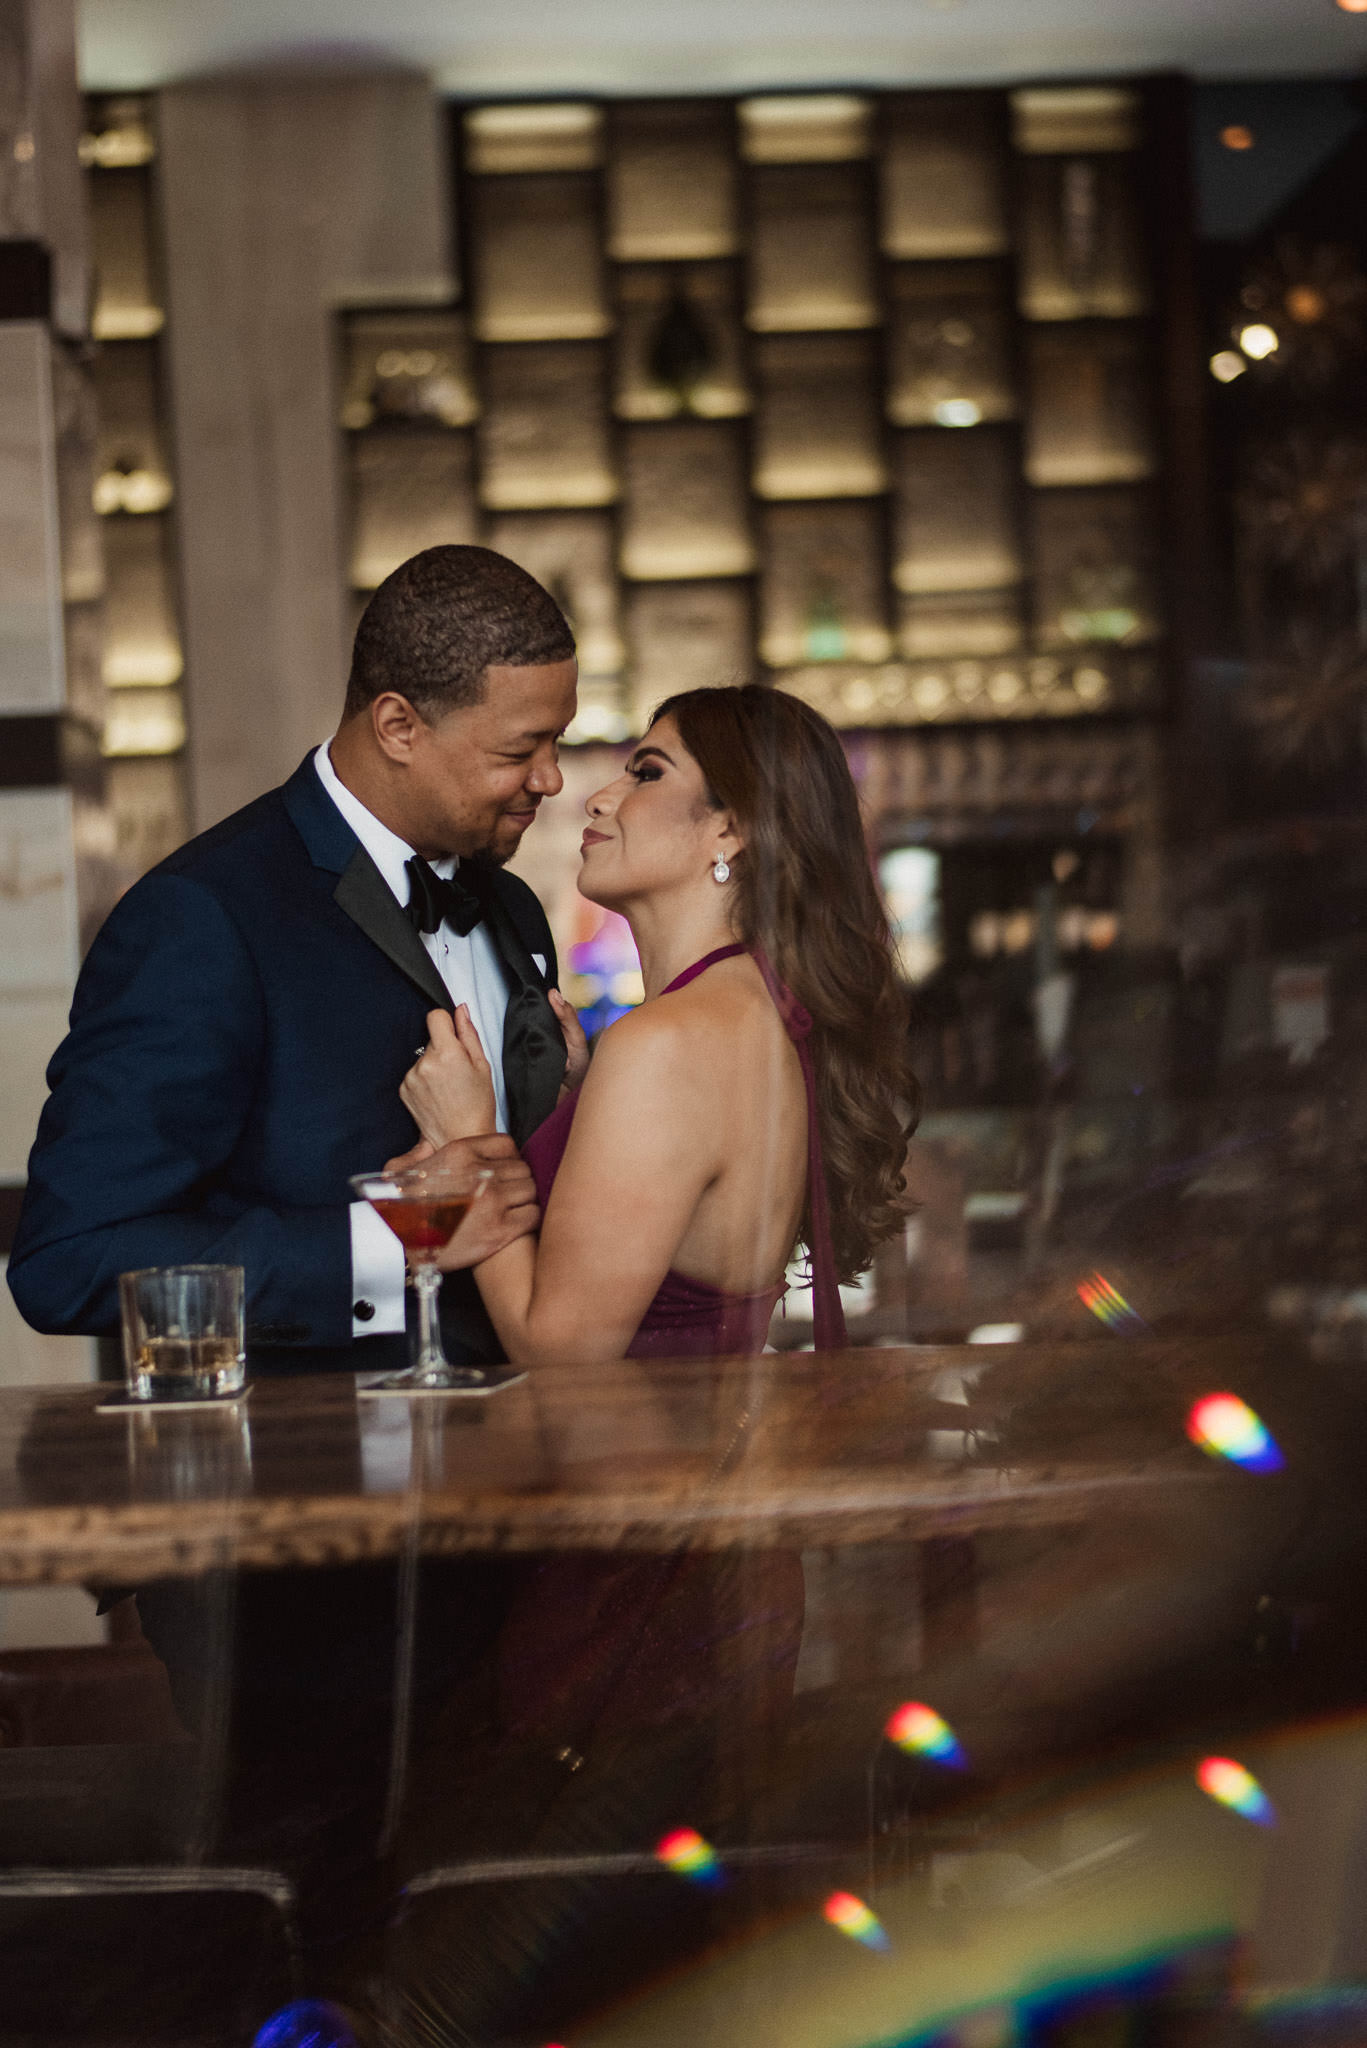 lawless-swanky-classy-iconic-bar-houston-black-tie-engagement-photographer-alcohol-cocktails-drinks-lifestyle